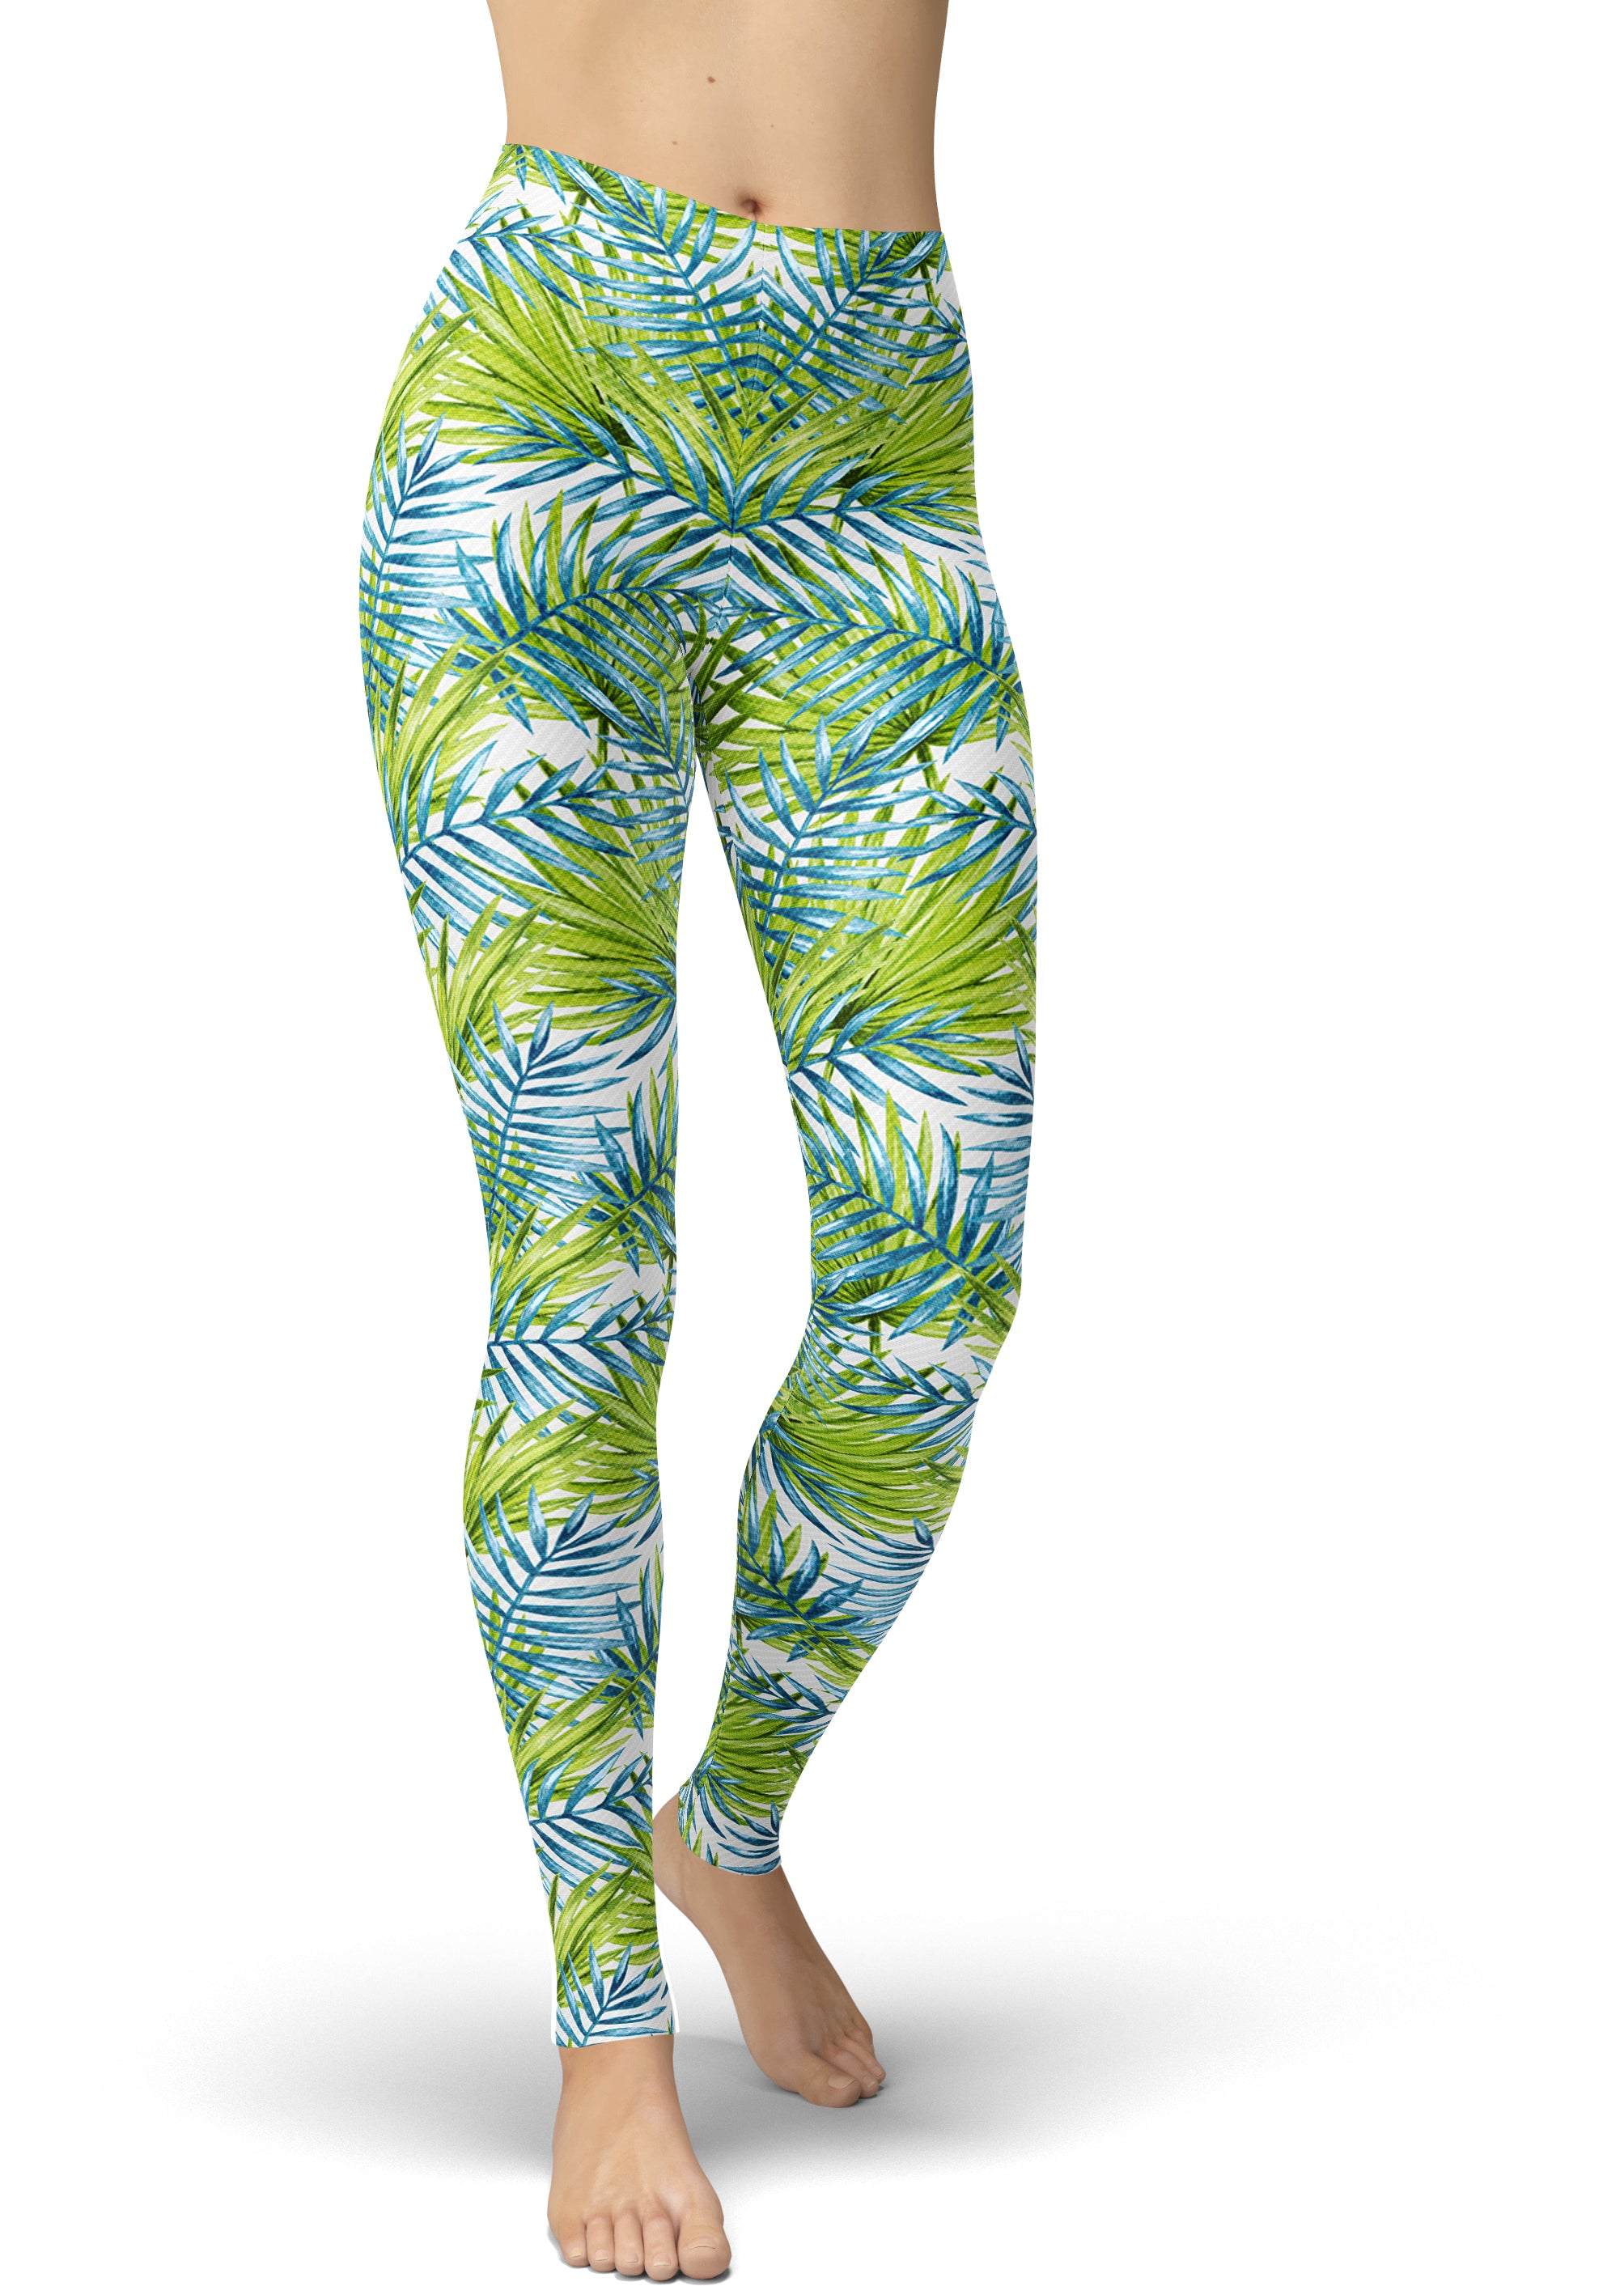 Green, White & Blue Jungle Leggings